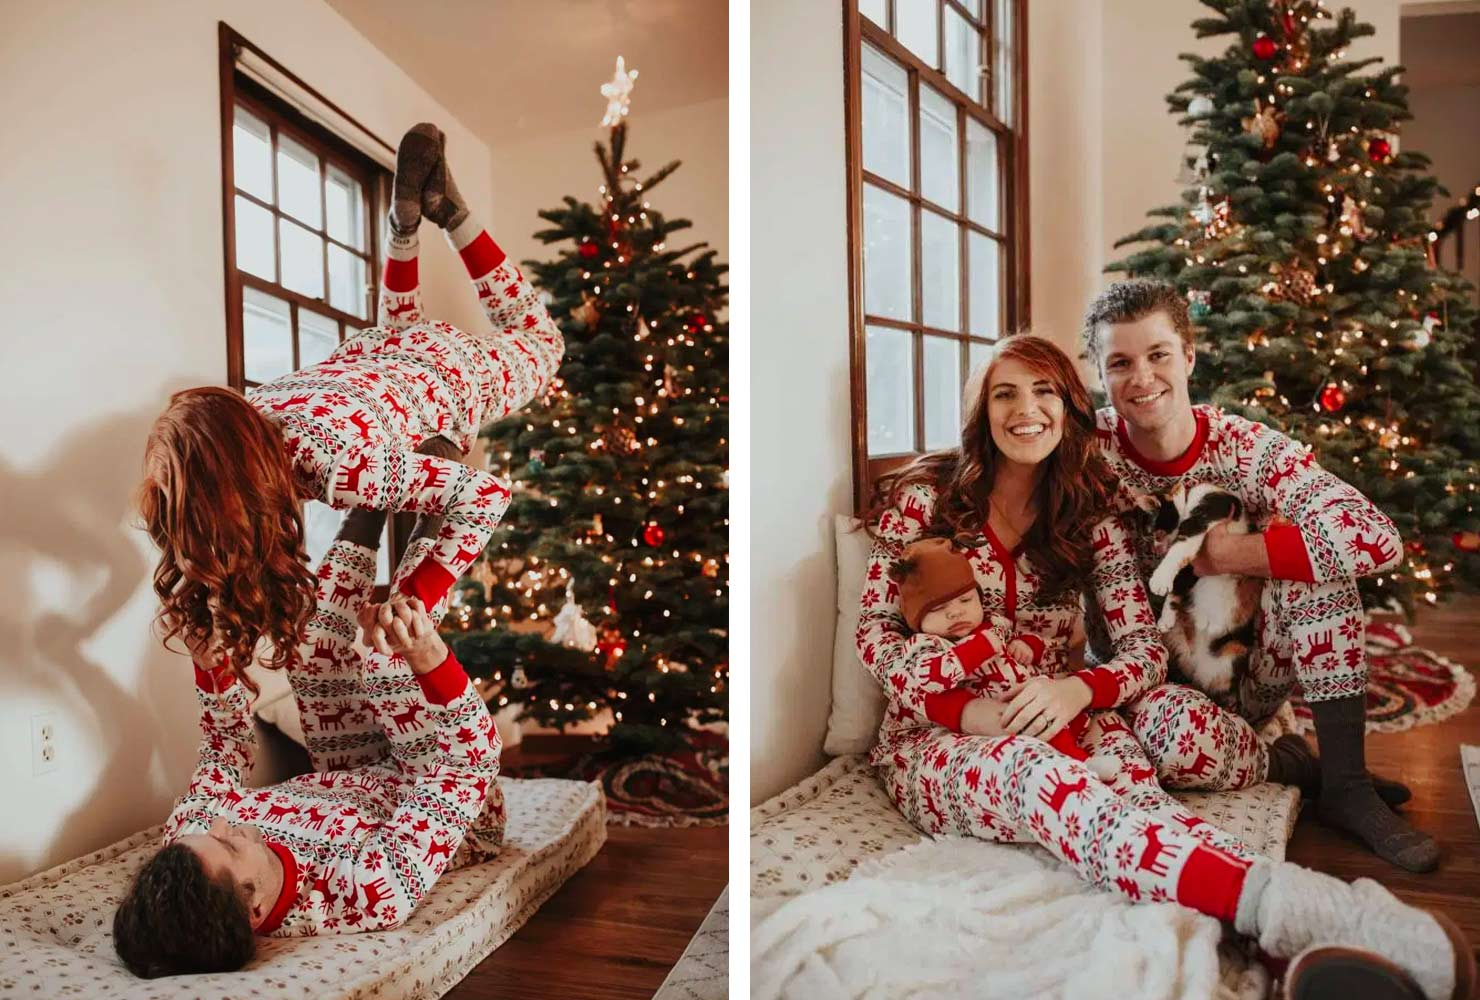 christmas photo ideas matching pajamas.